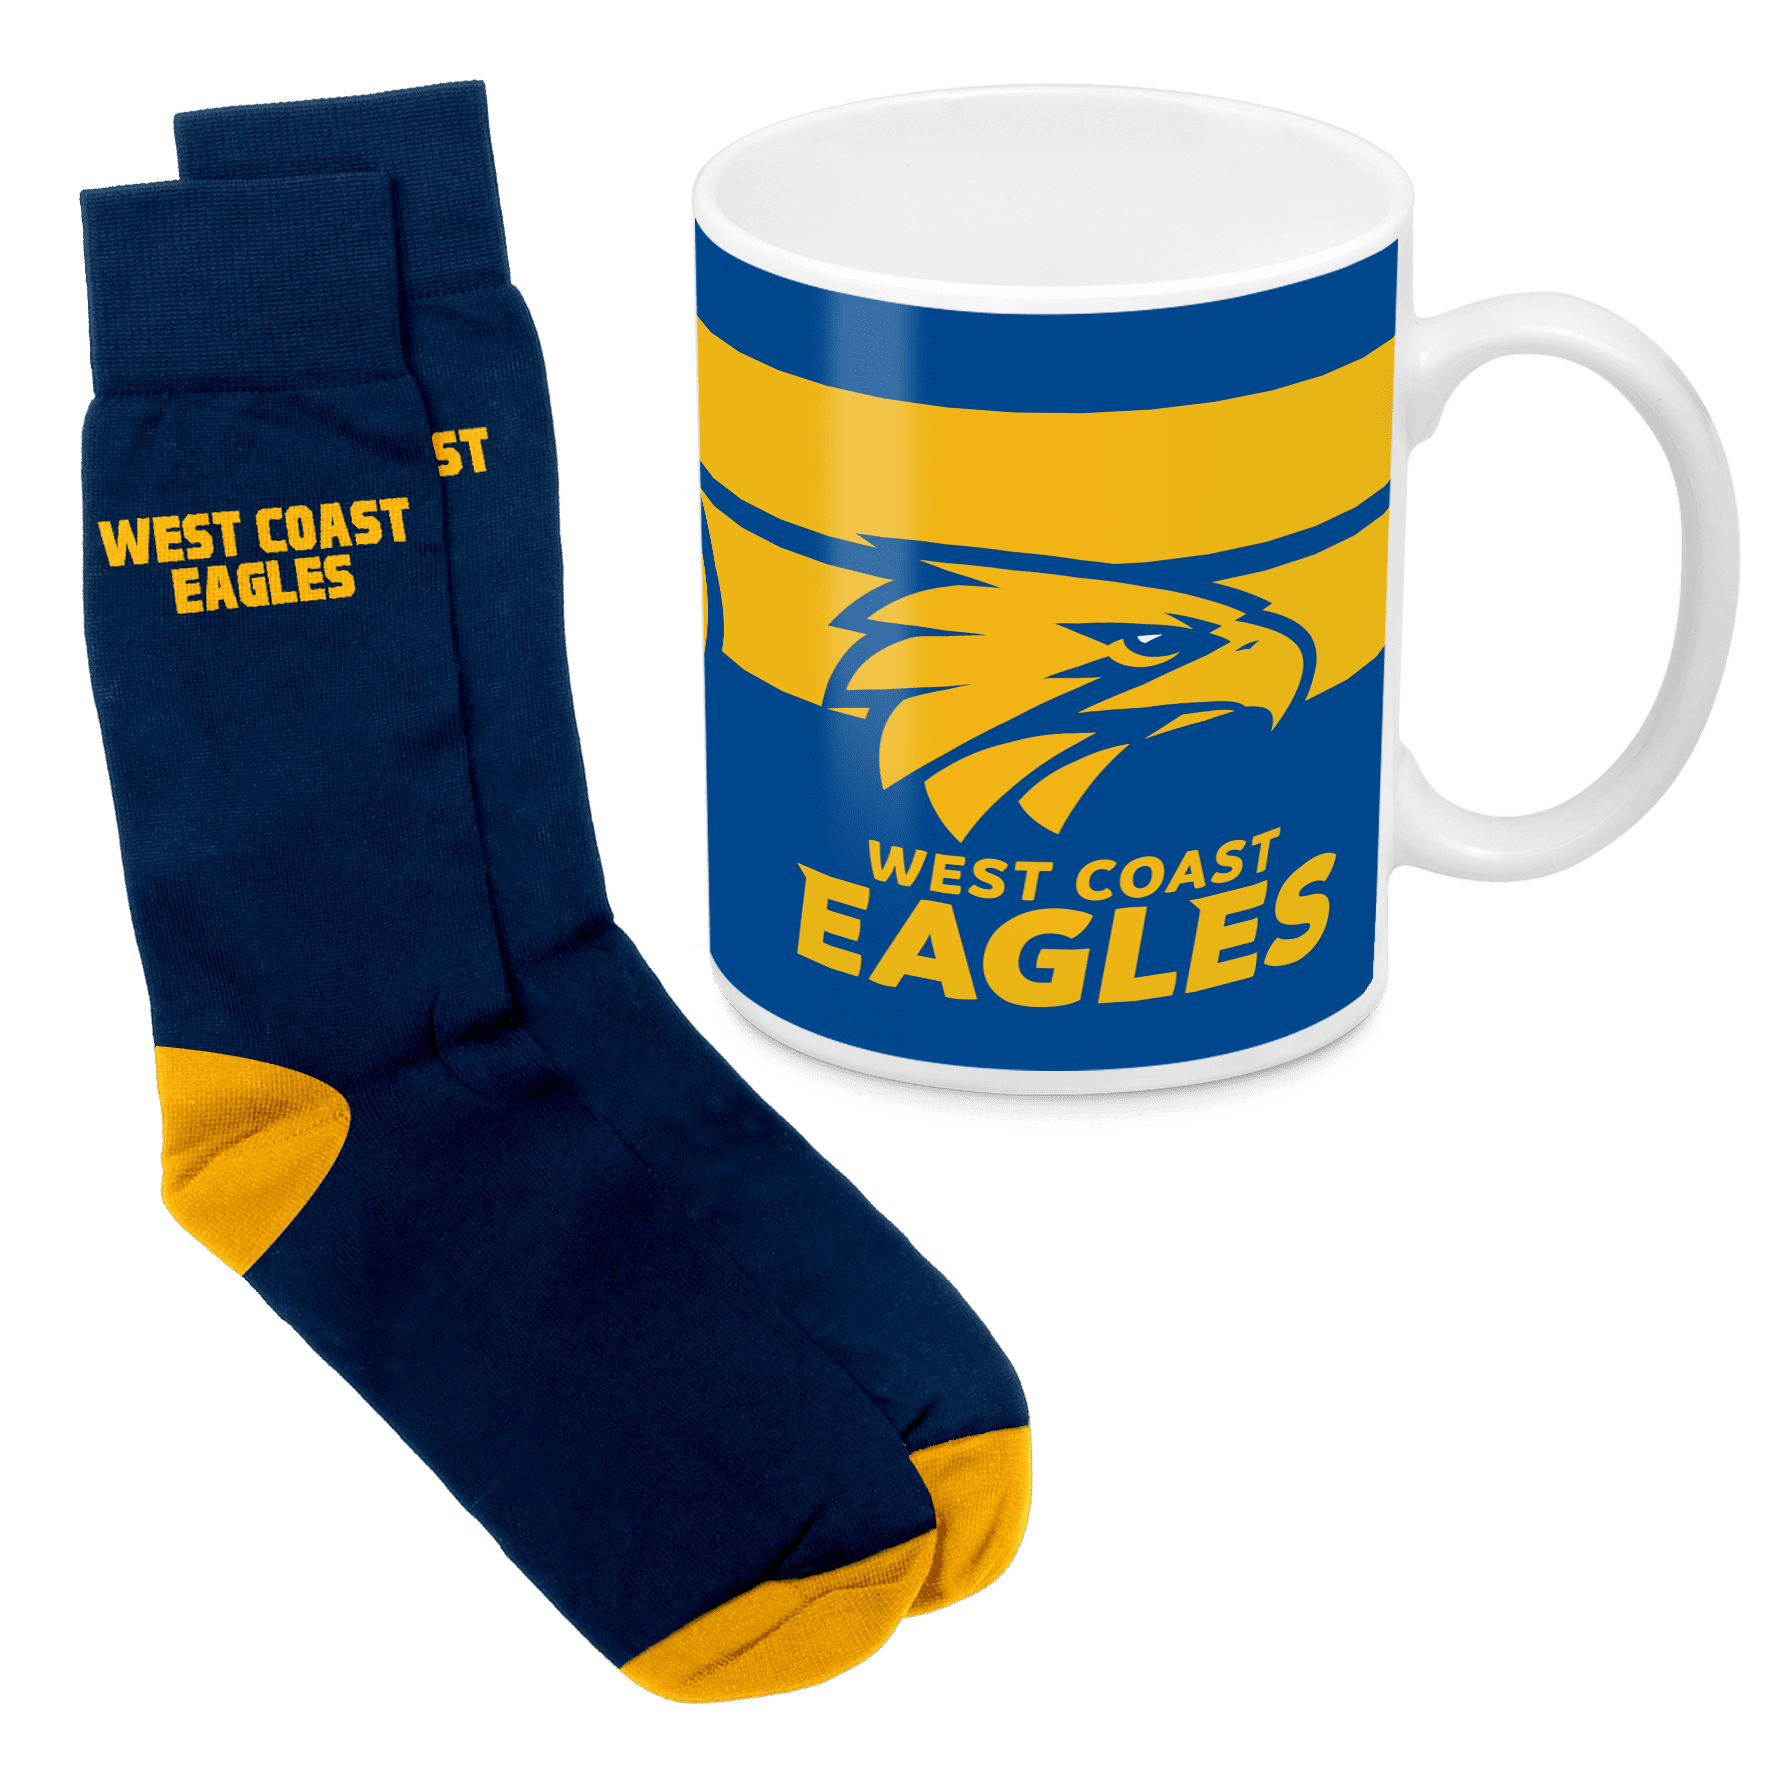 AFL Mug & Sock Gift Pack West Coast